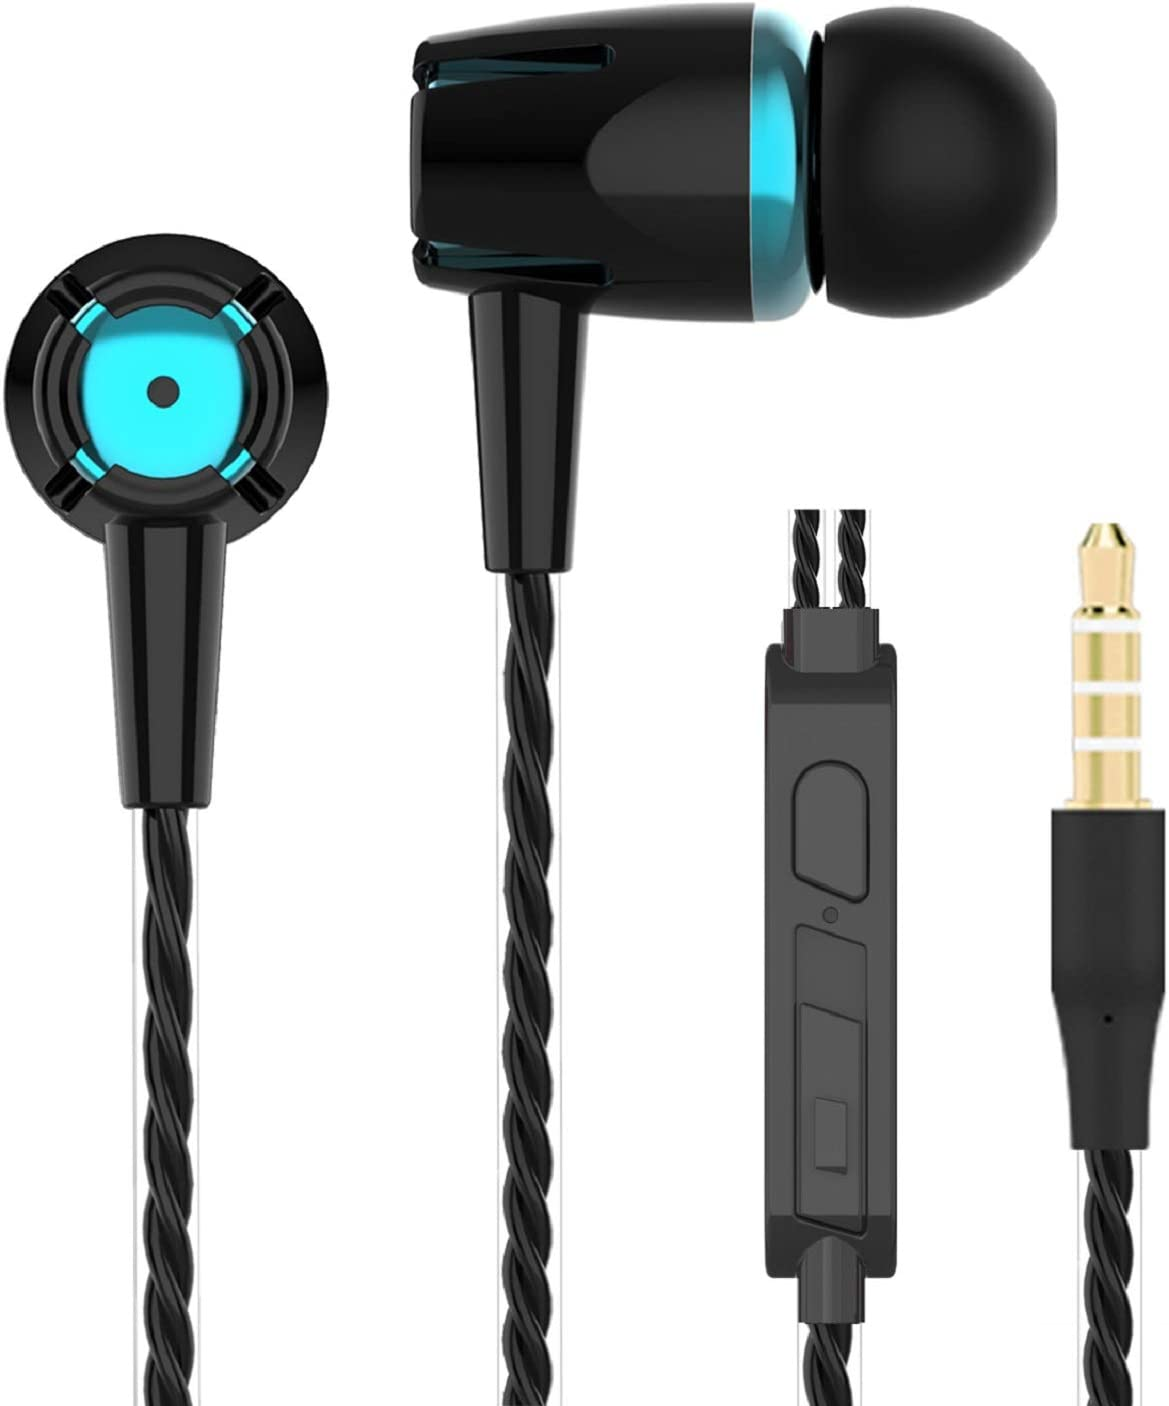 A9 Headphones Earphones Earbuds Earphones, Noise Islating, High Definition, Stereo for Samsung, iPhone,iPad, iPod and Mp3 Players (Mixed Color 4 Pairs): Home Audio & Theater